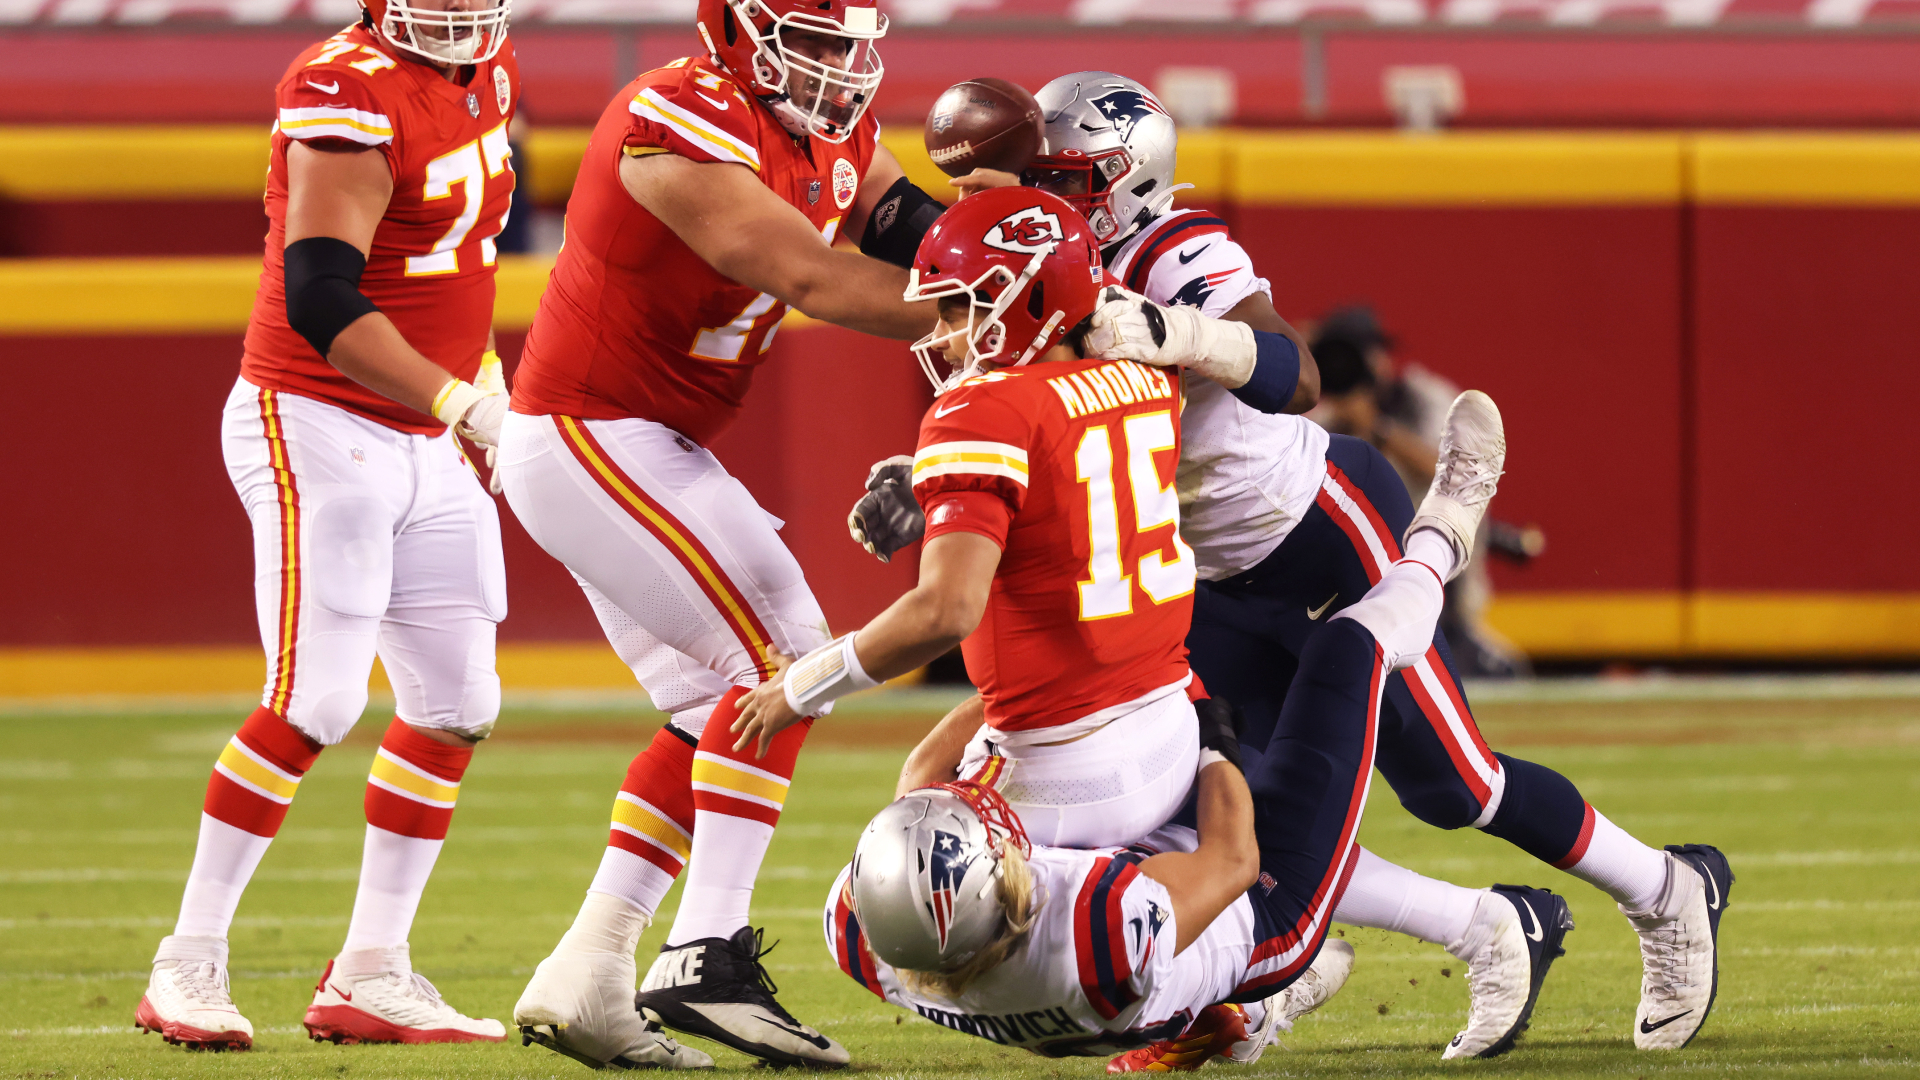 Officials butcher call in Chiefs-Patriots game, negating clear Kansas City  turnover | Sporting News